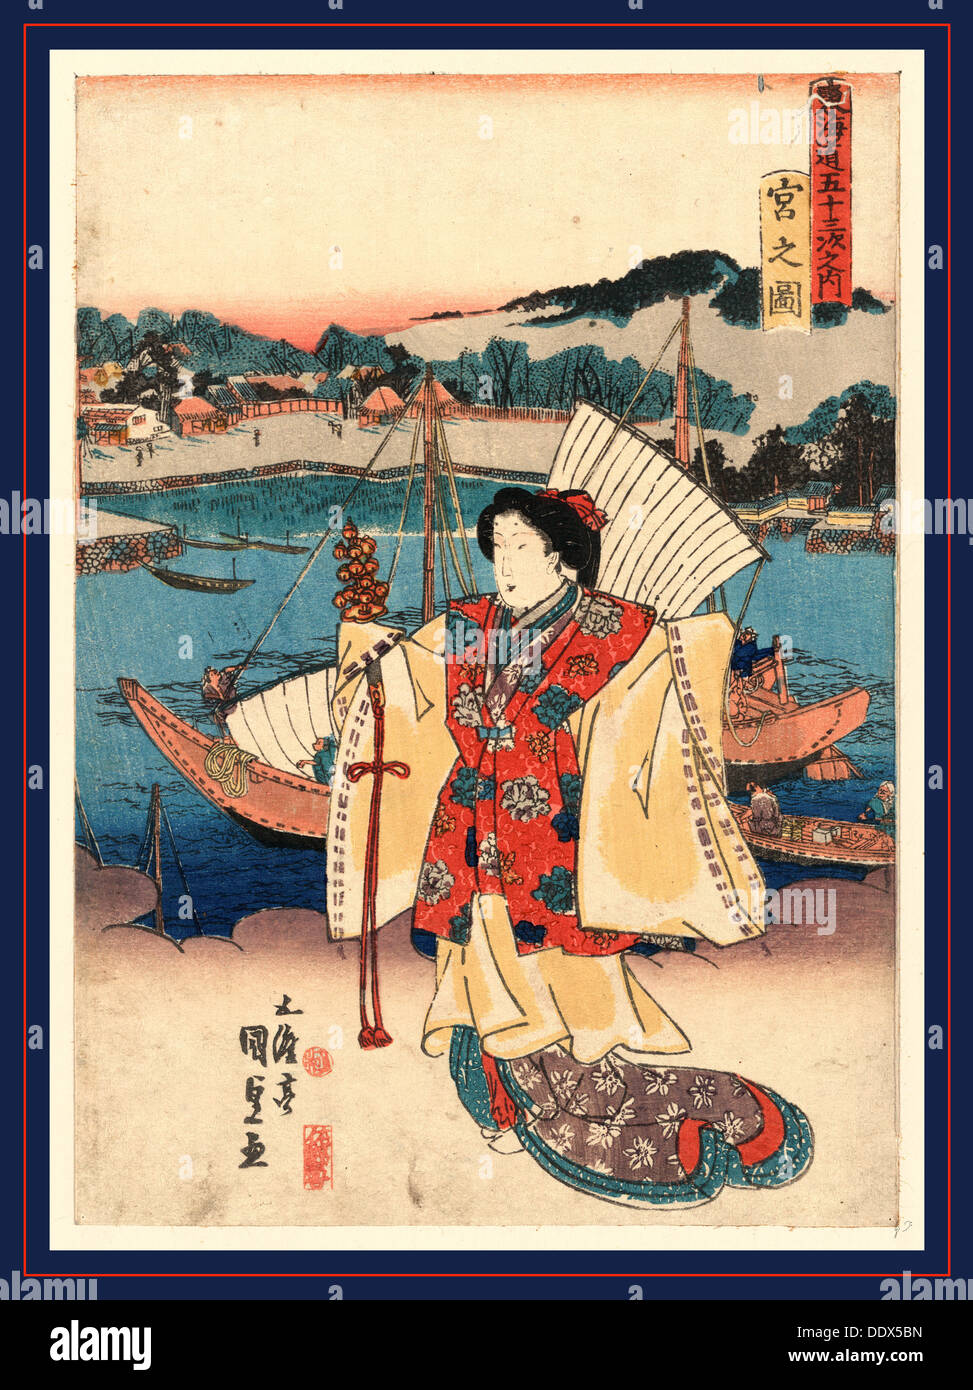 Miya no zu, View of Miya. [between 1835 and 1838], 1 print : woodcut, color ; 24.6 x 17.6 cm., Print shows a woman standing on - Stock Image